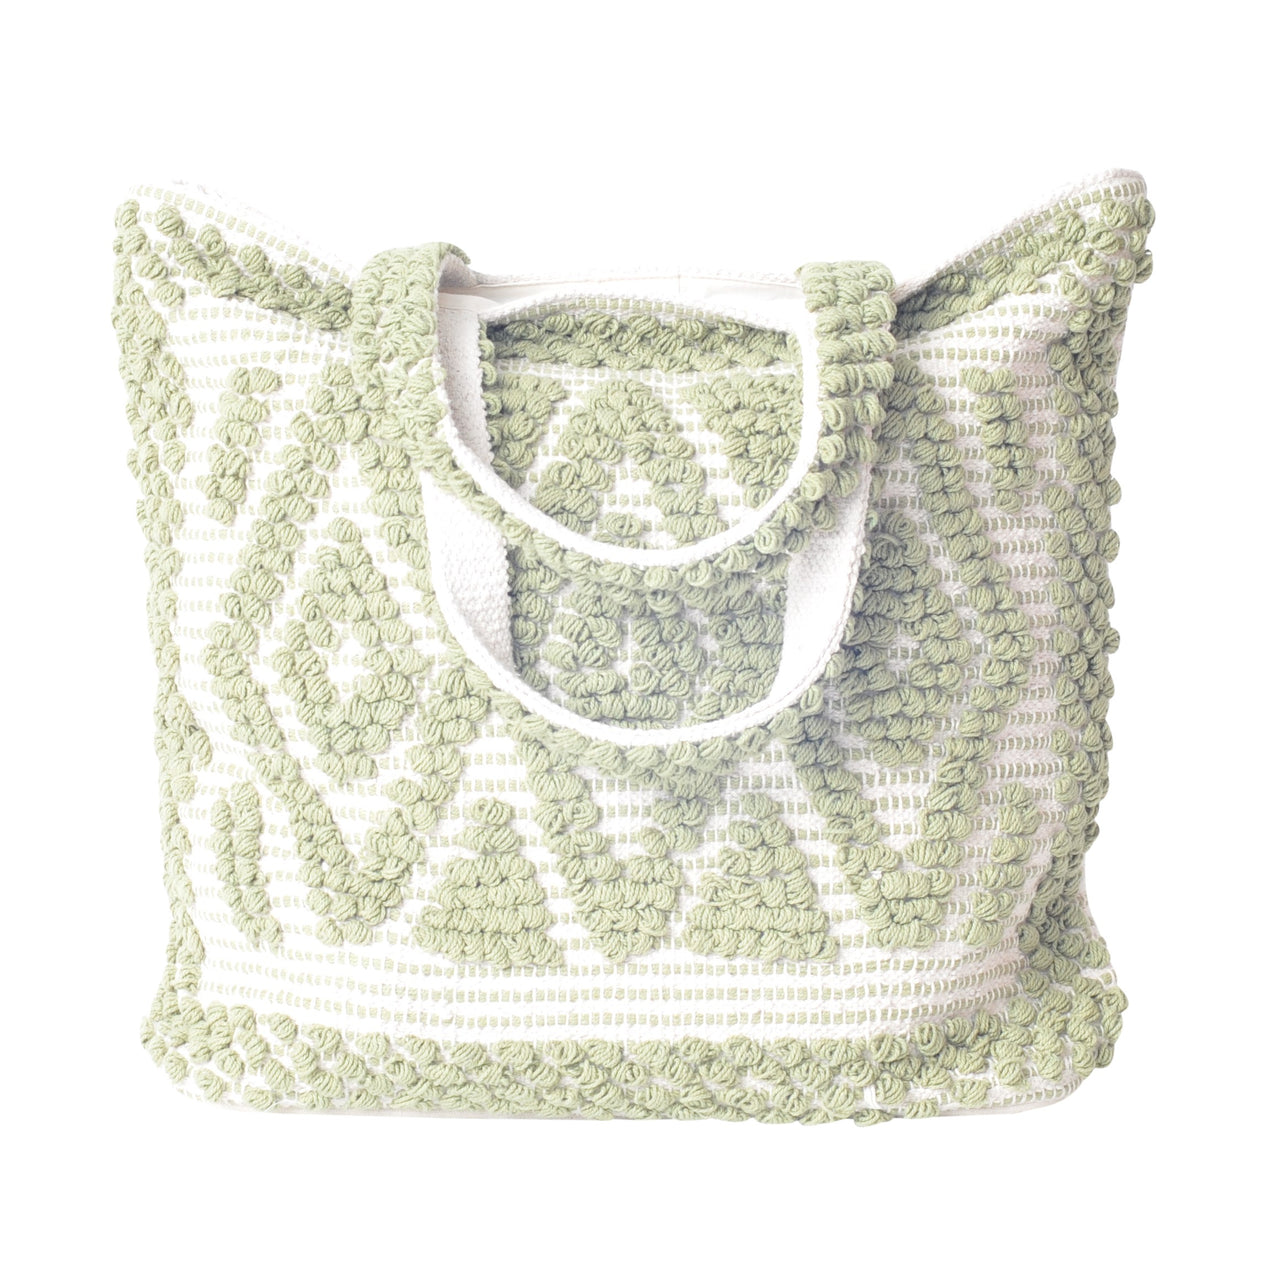 khaki boho beach bag tote hand loomed diamond pattern